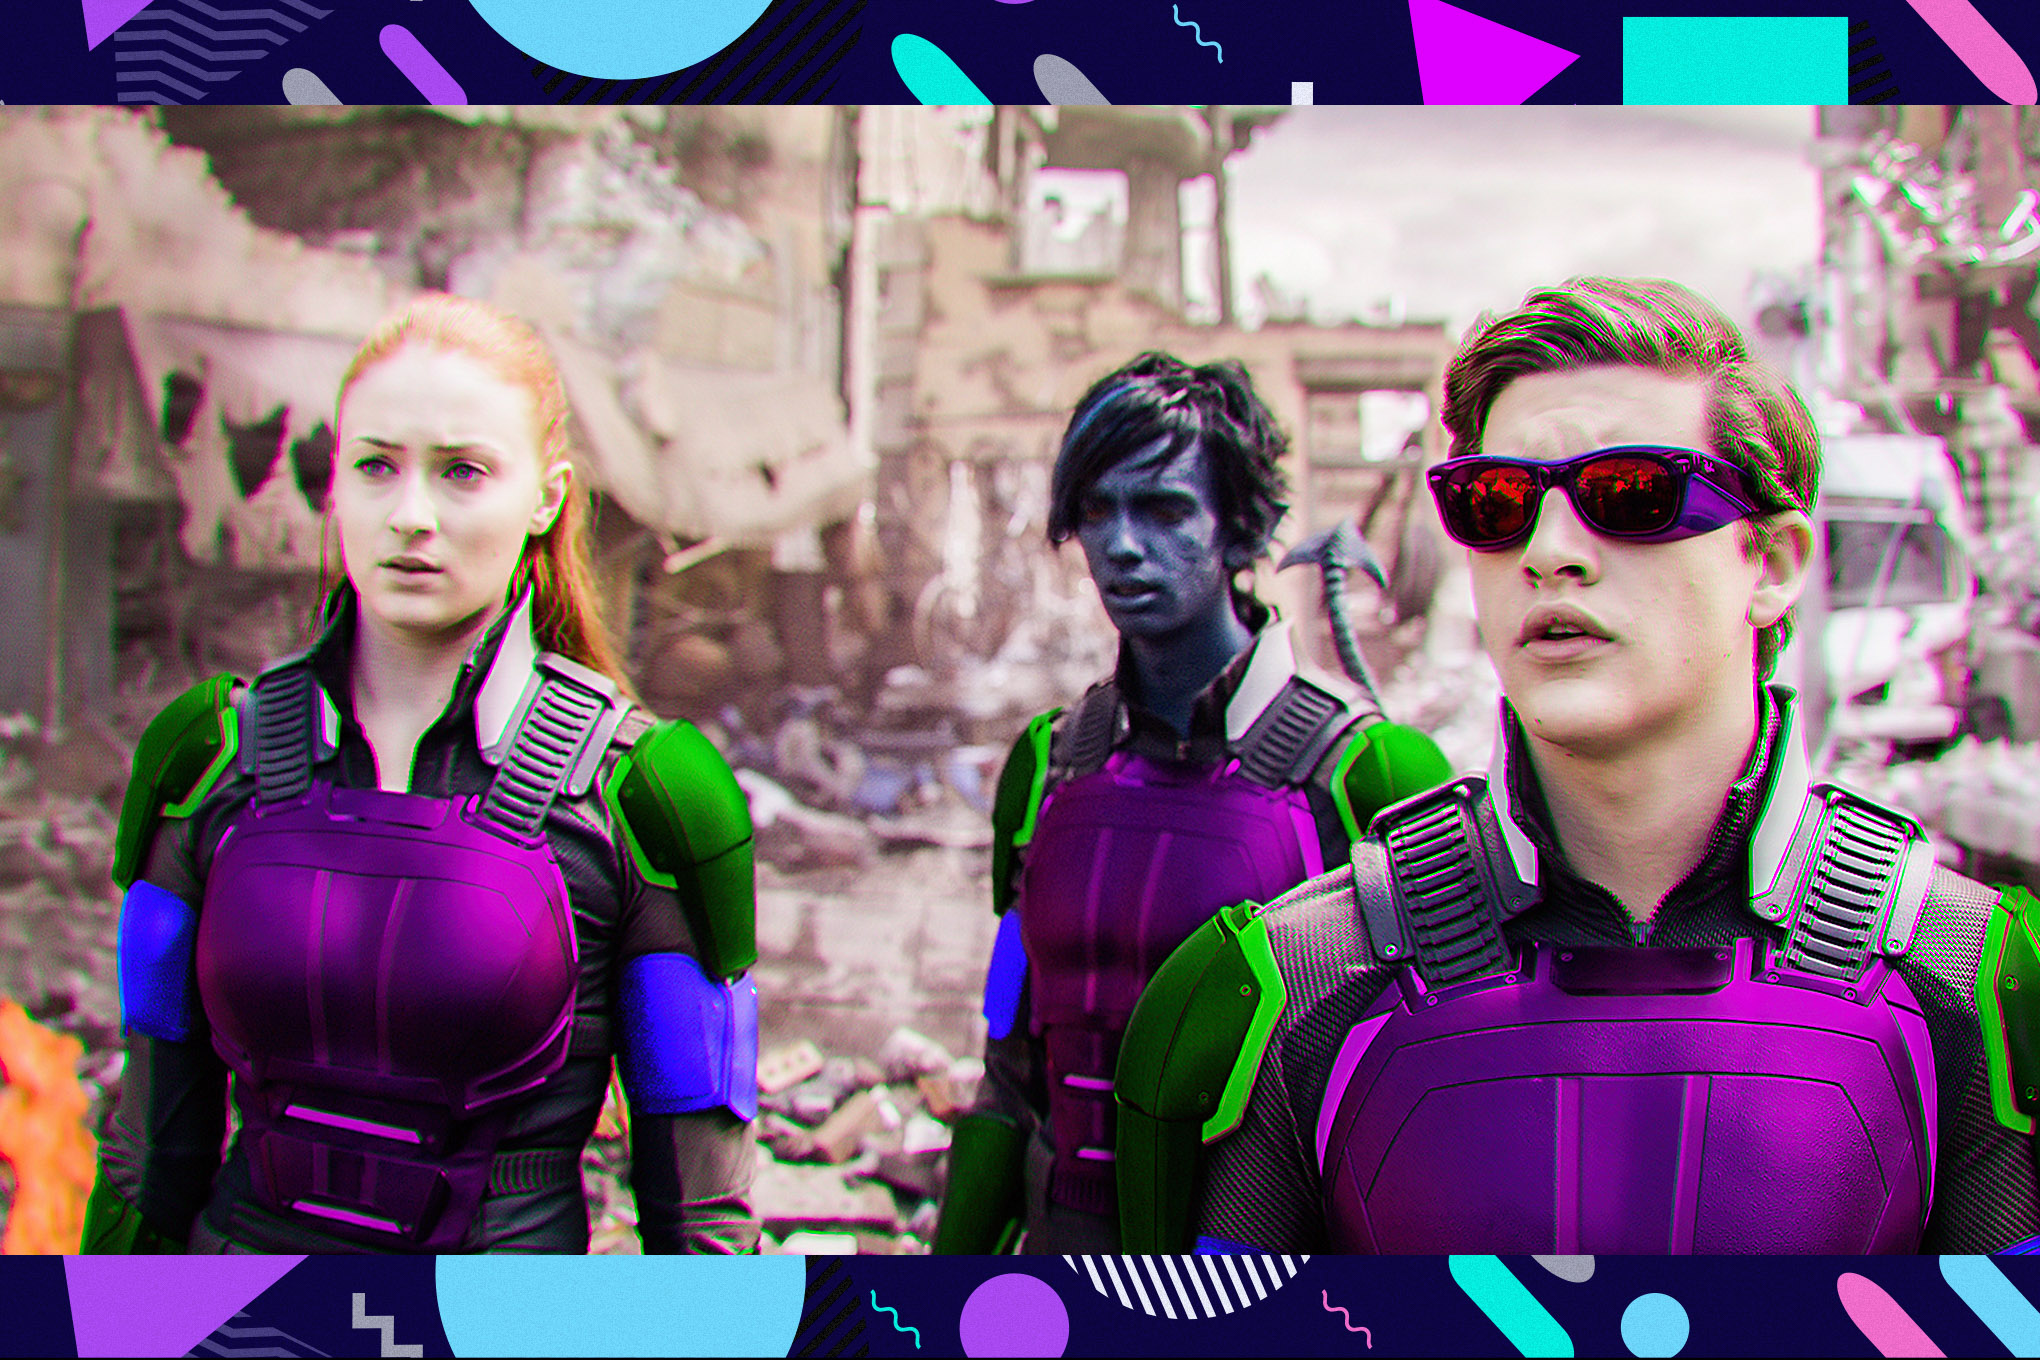 The abandoned X-Men movie of the 1980s isn't missed by anyone involved